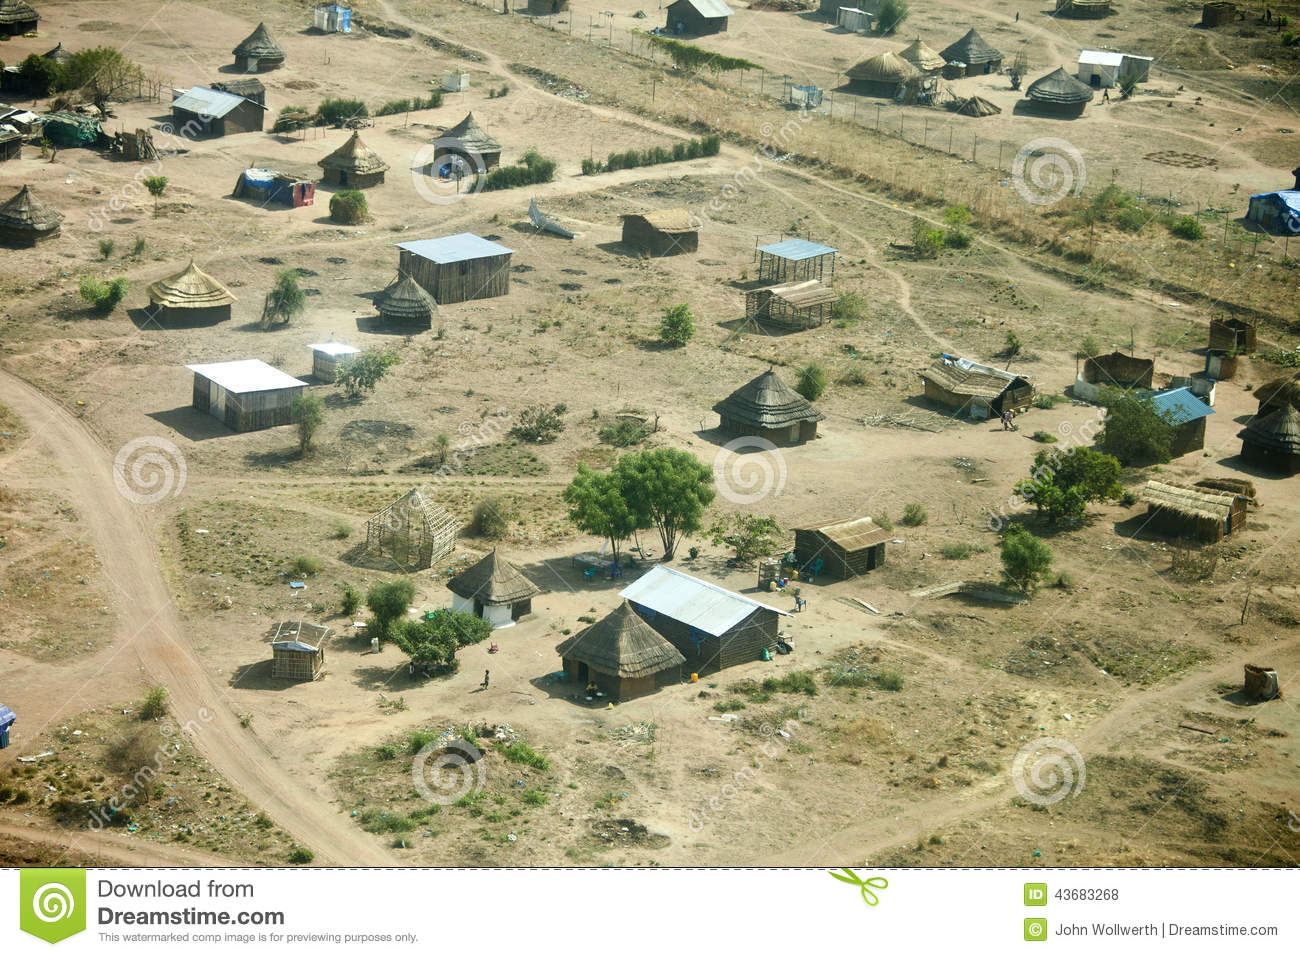 Aerial View Of Village In South Sudan Stock Photo - Image of exotic